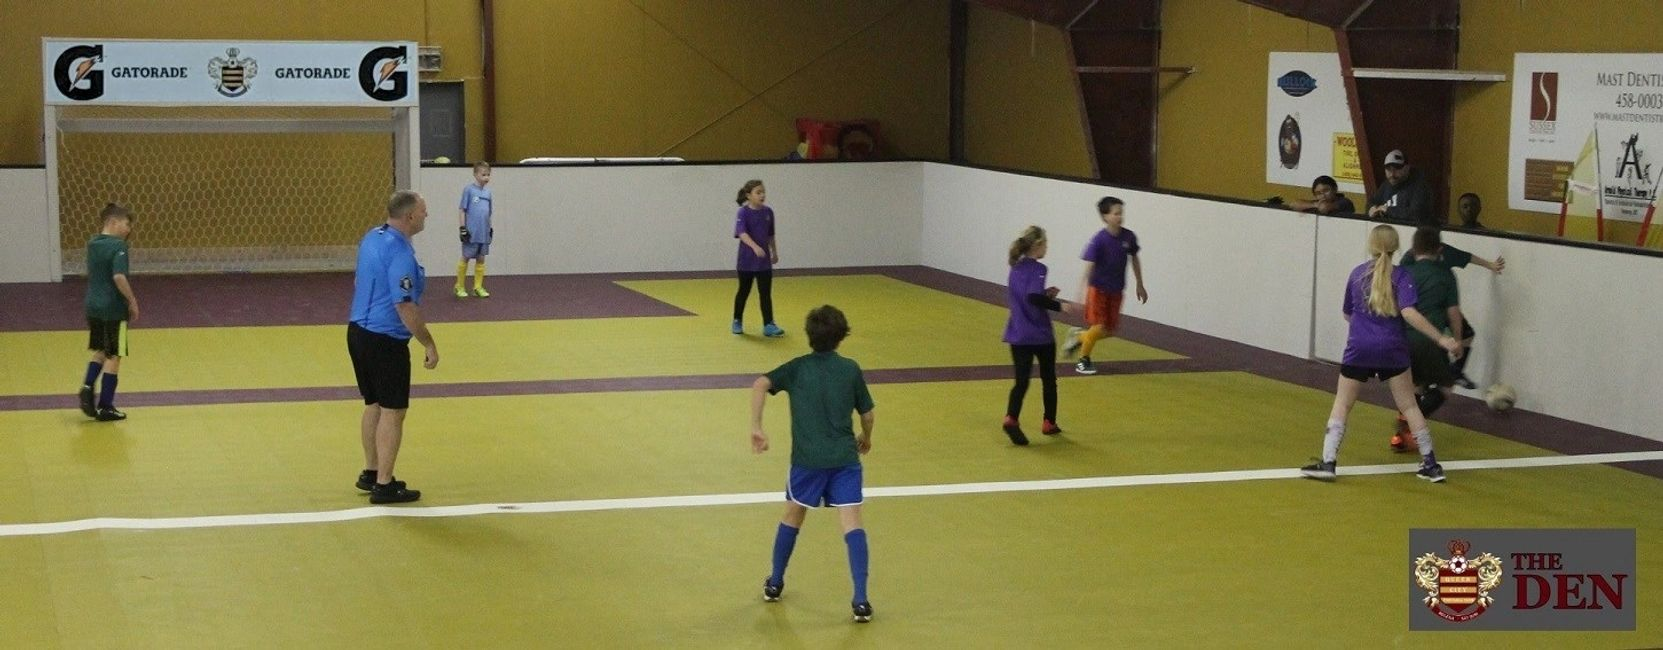 Indoor soccer in Helena Montana for youth and adults